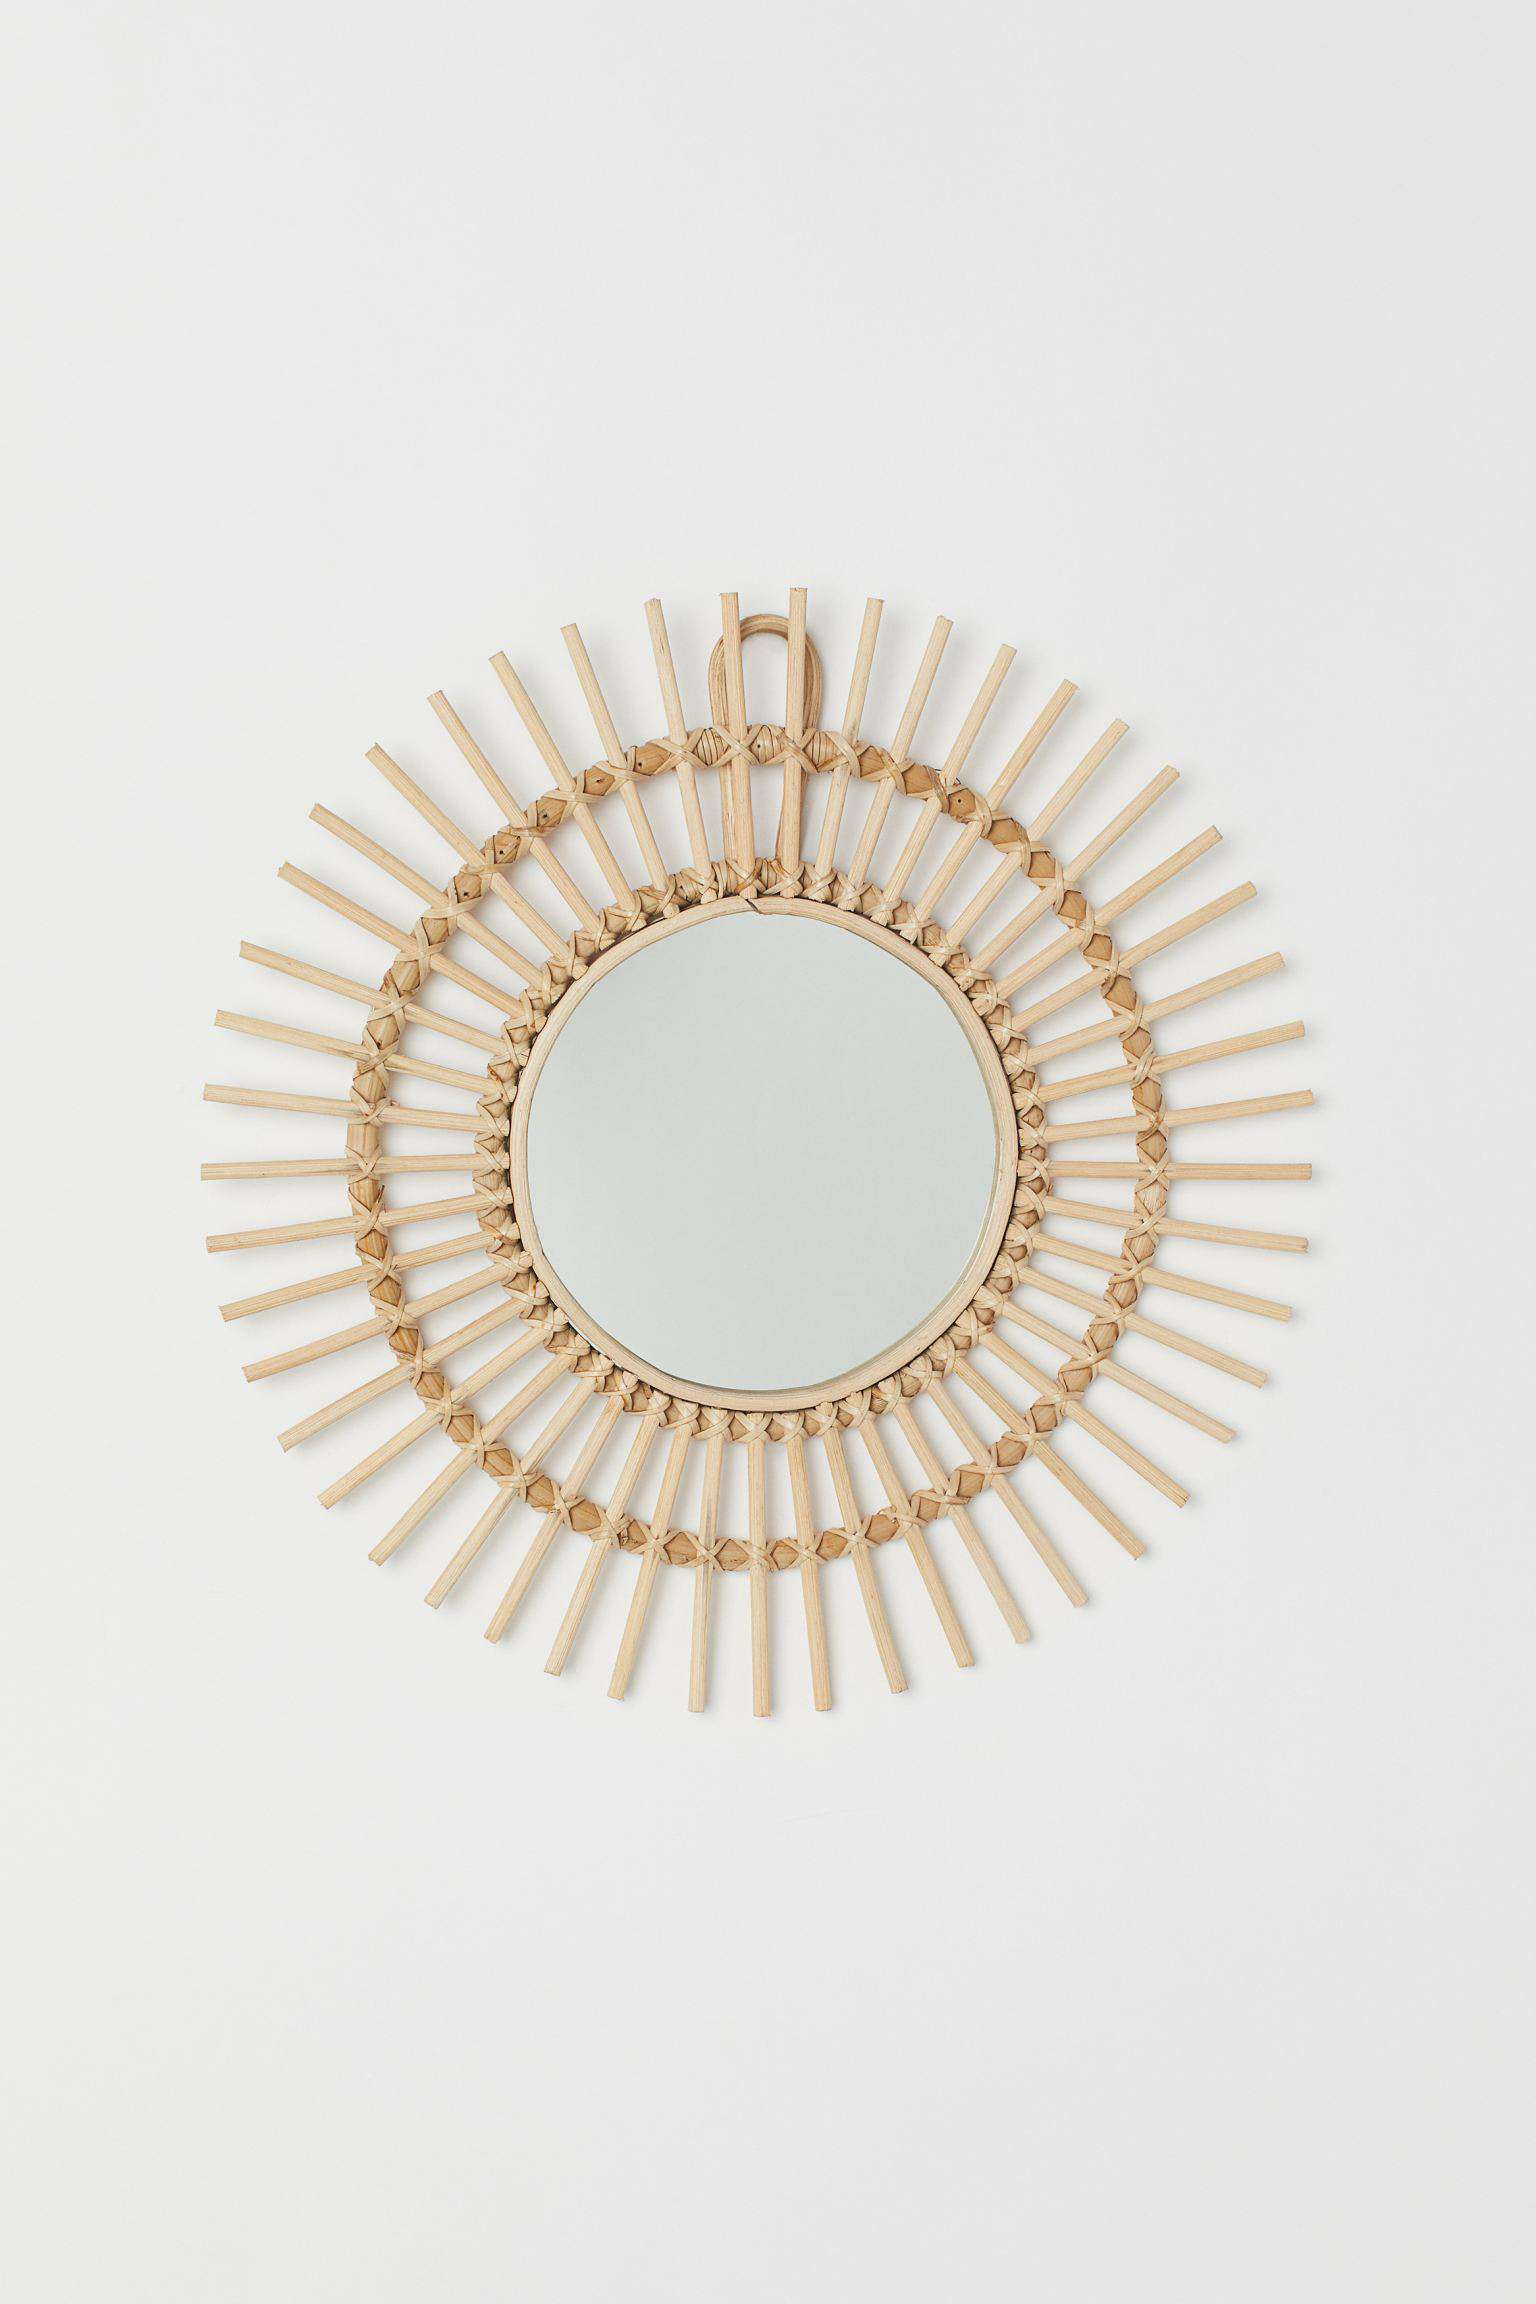 Mirror with rattan frame.